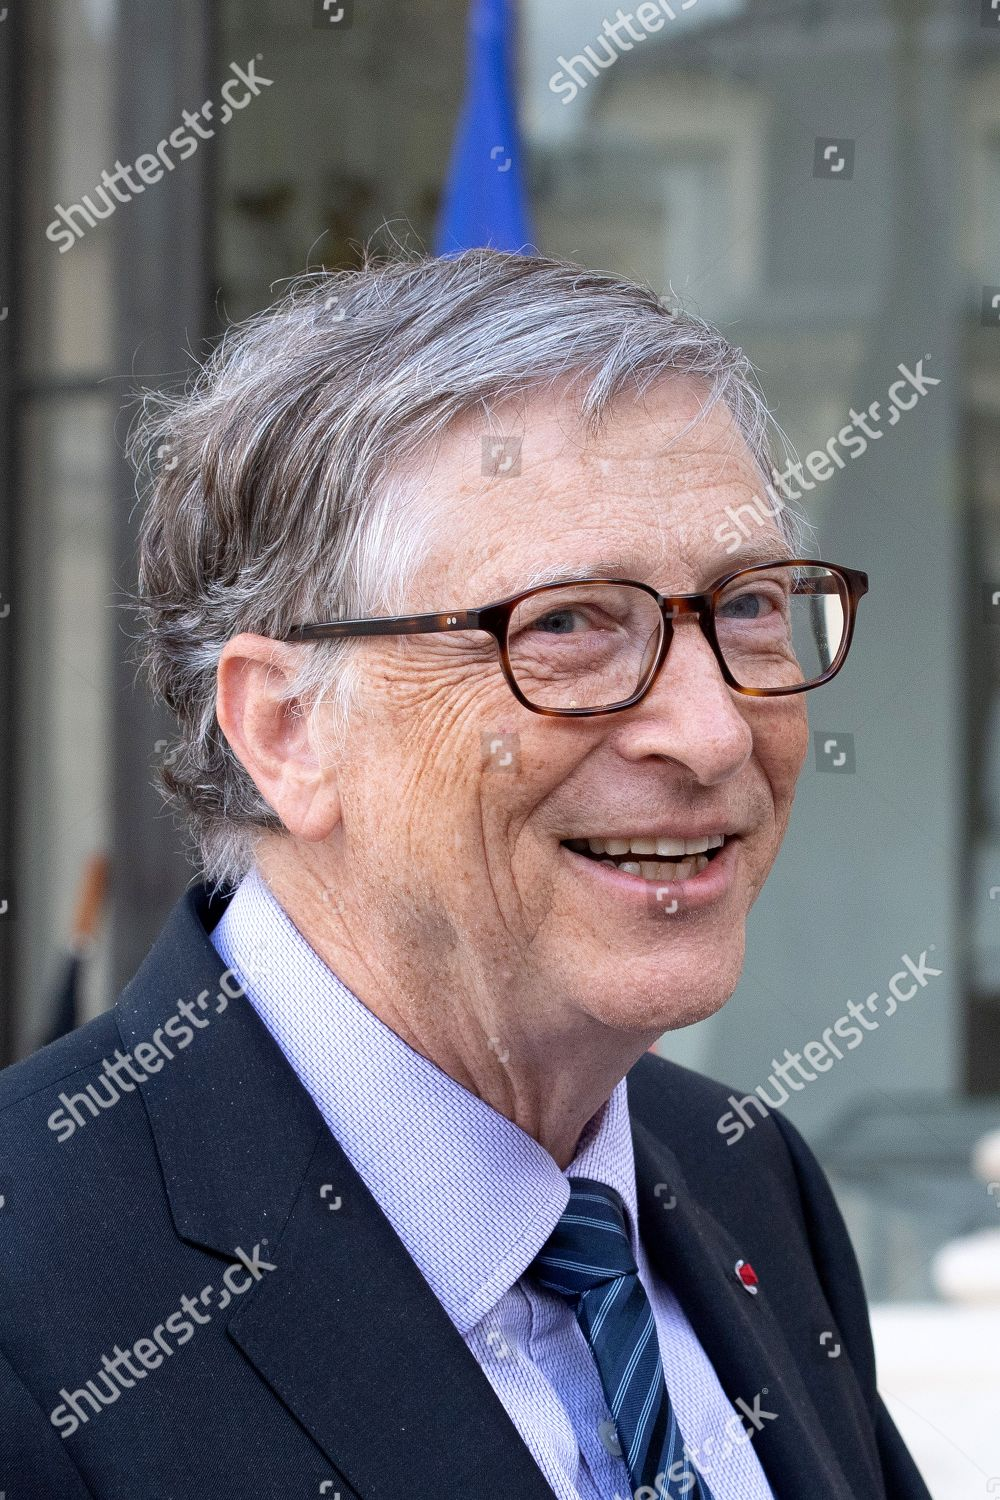 bill-gates-and-melinda-gates-at-the-elysee-palace-paris-france-stock-image-by-pierre-villard-for-editorial-use-apr-16-2018